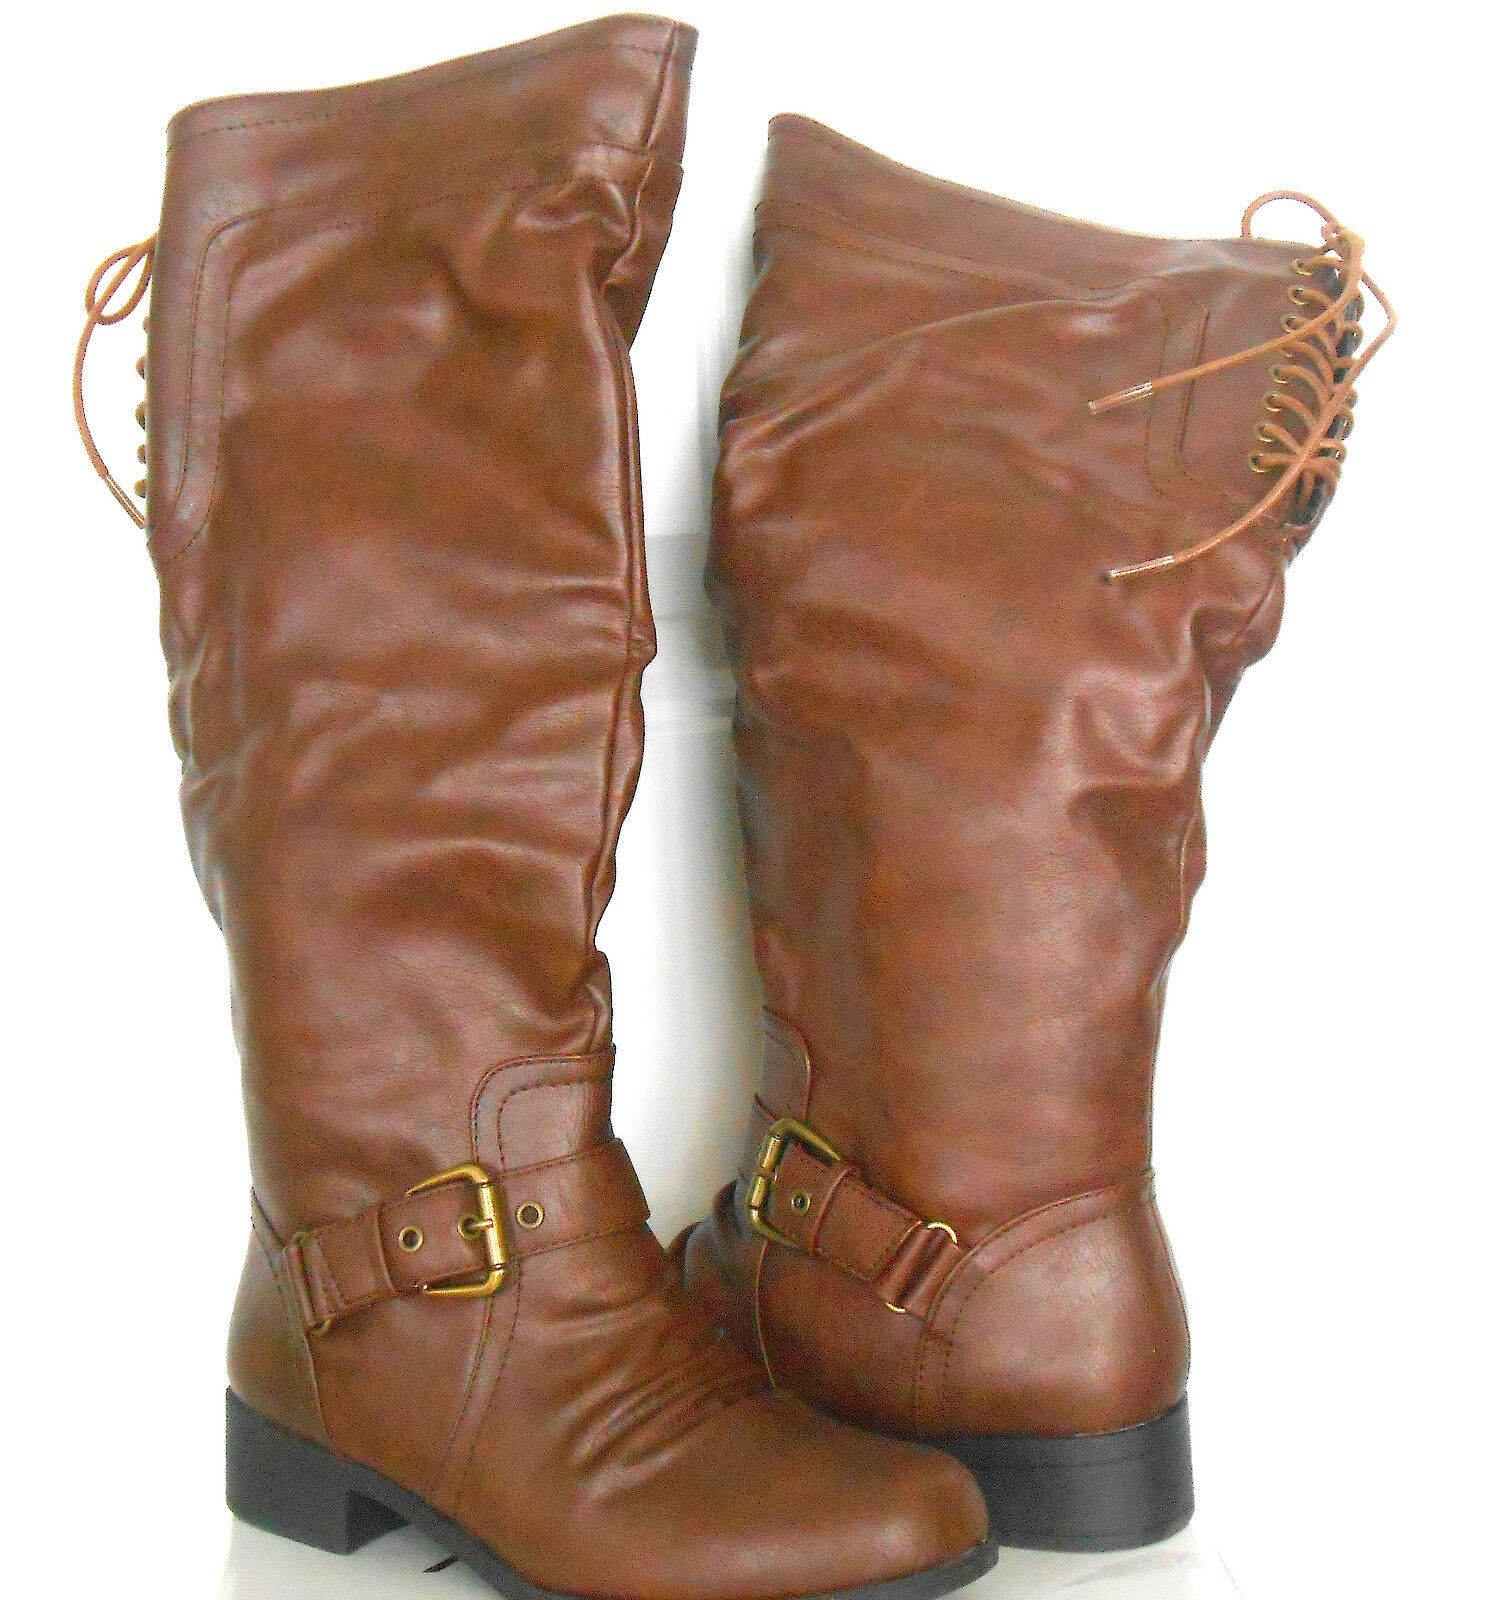 XOXO MARCHER BROWN BOOT NEW Damenschuhe SIZE 5.5 BRAND NEW BOOT eb3bf9